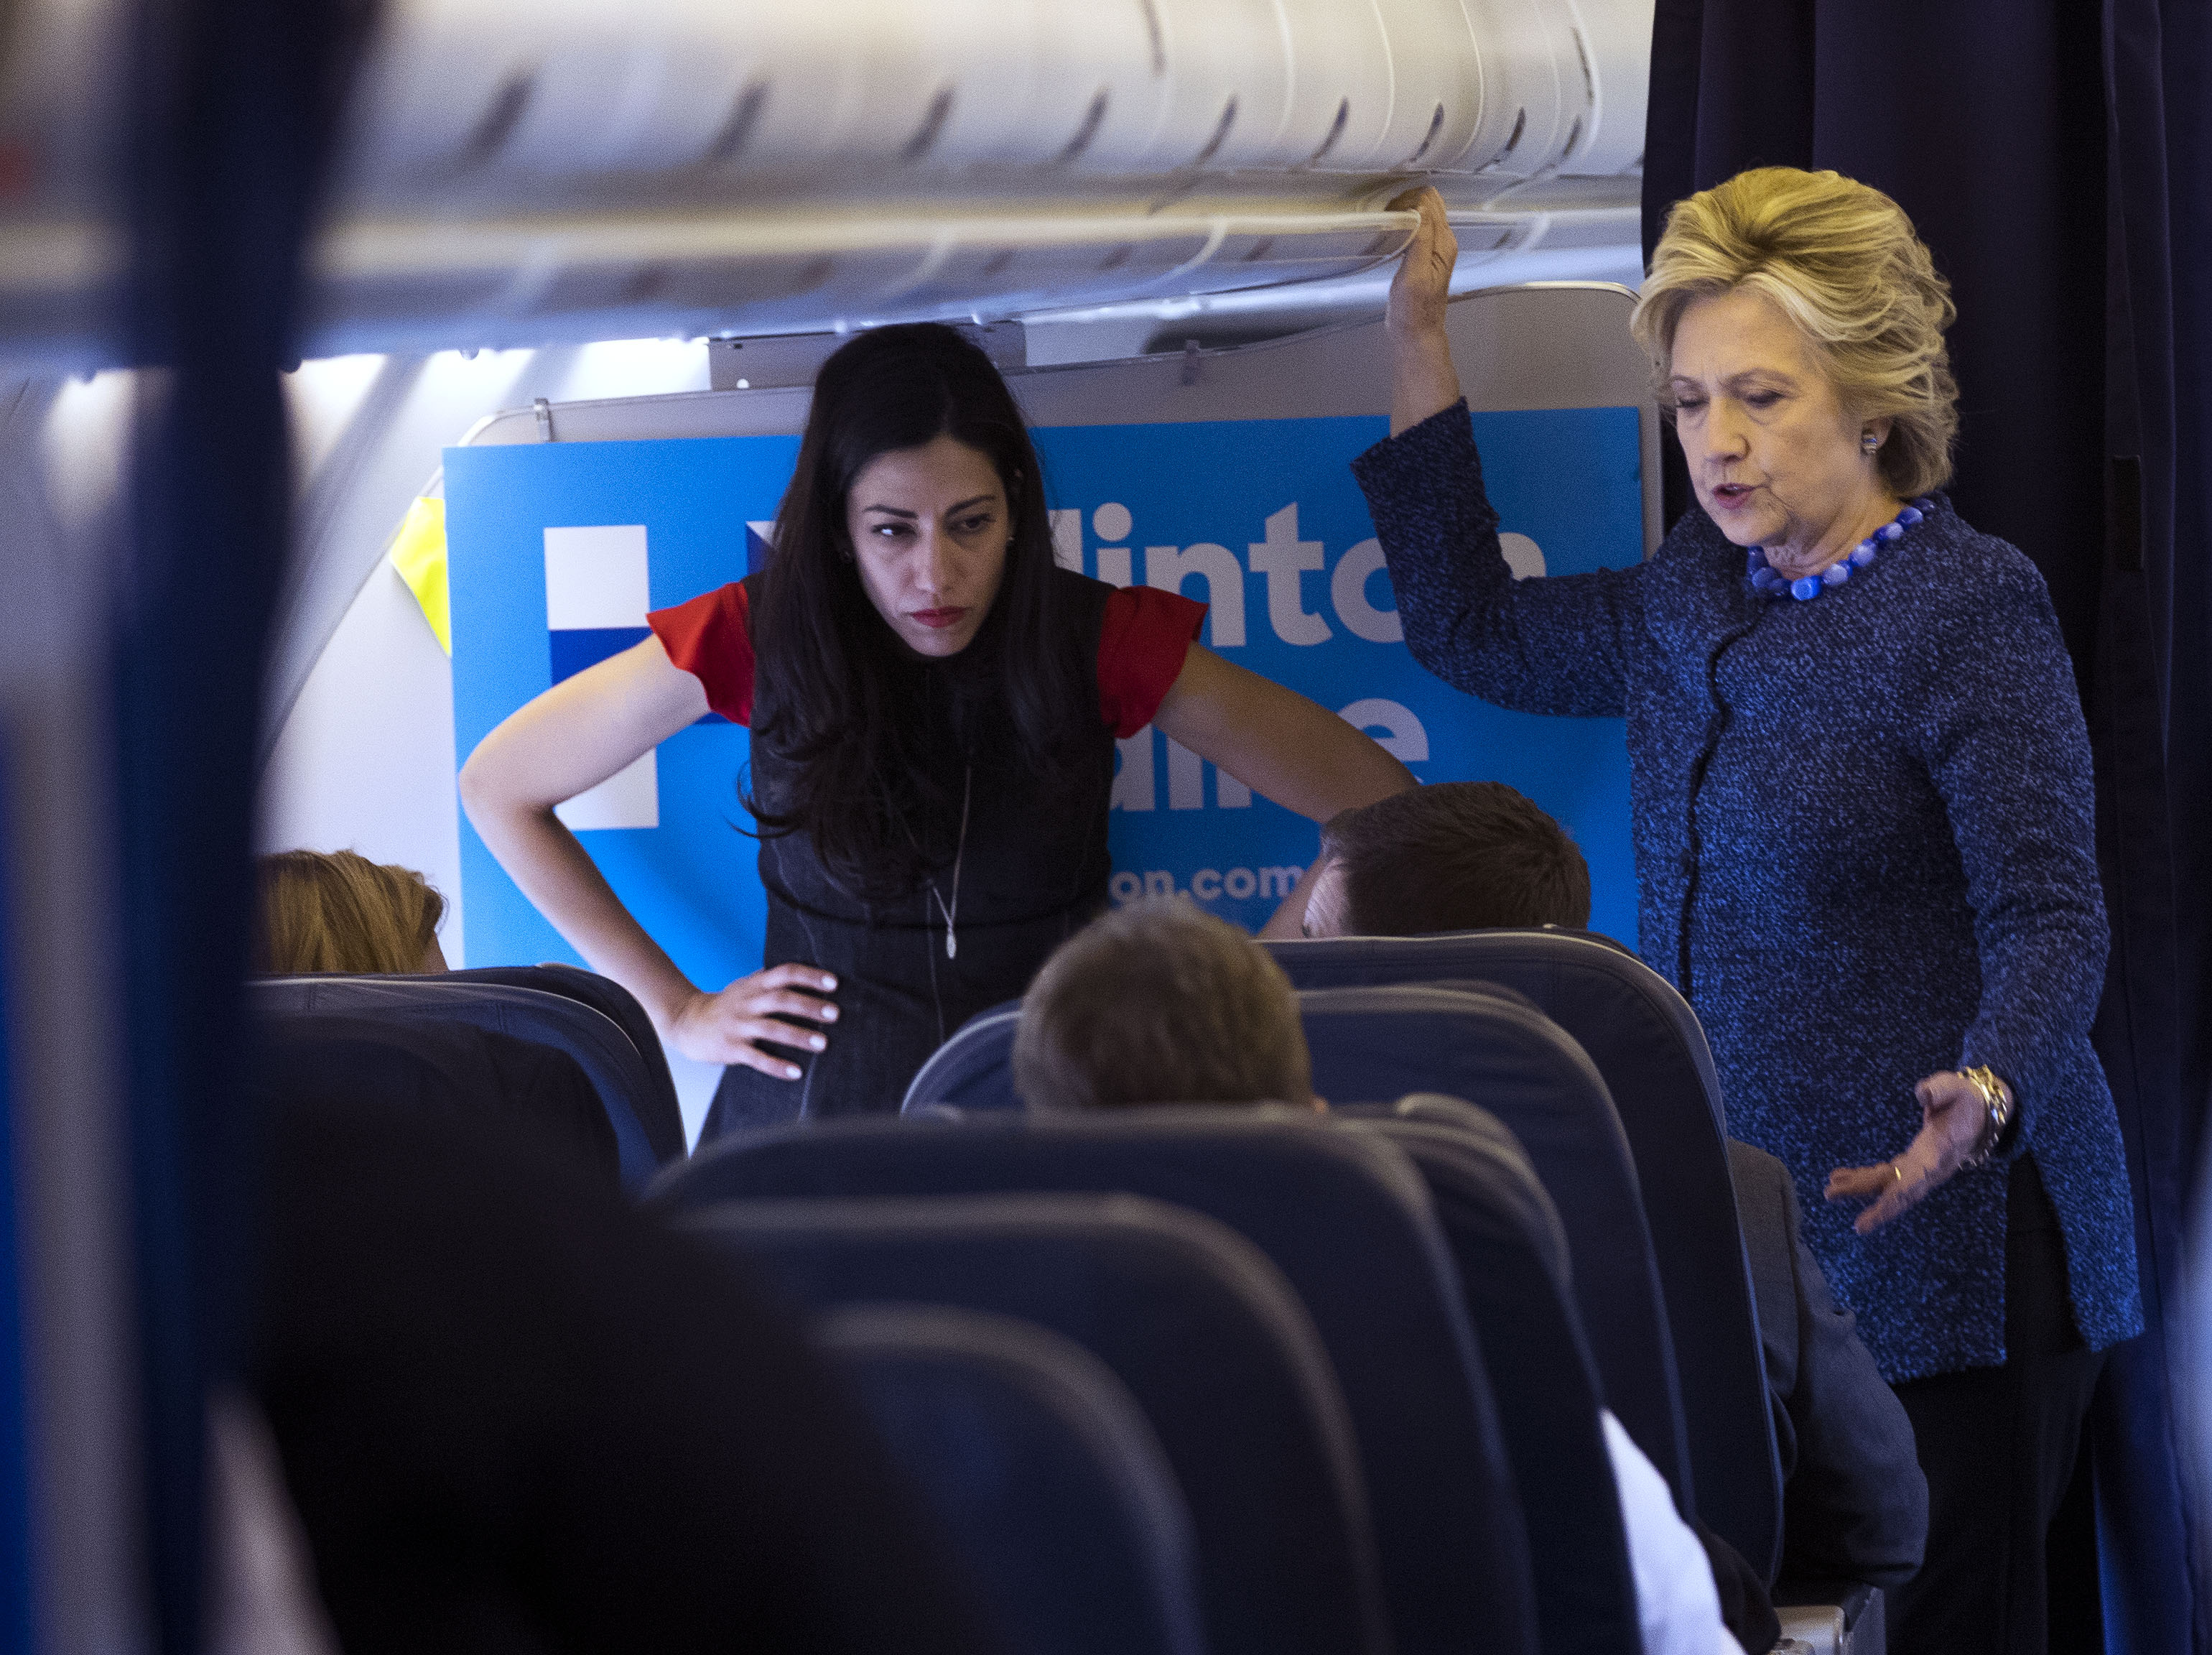 Hillary Clinton with aide Huma Abedin, right, aboard Clinton's campaign plane as they head to Cedar Rapids, Iowa, for a campaign rally, Friday, Oct. 28, 2016. Federal law enforcement officials said Friday that the new emails uncovered in the closed investigation into Clinton's use of a private email server were discovered after the FBI seized electronic devices belonging to Abedin and her husband, Anthony Weiner. (Doug Mills/The New York Times)